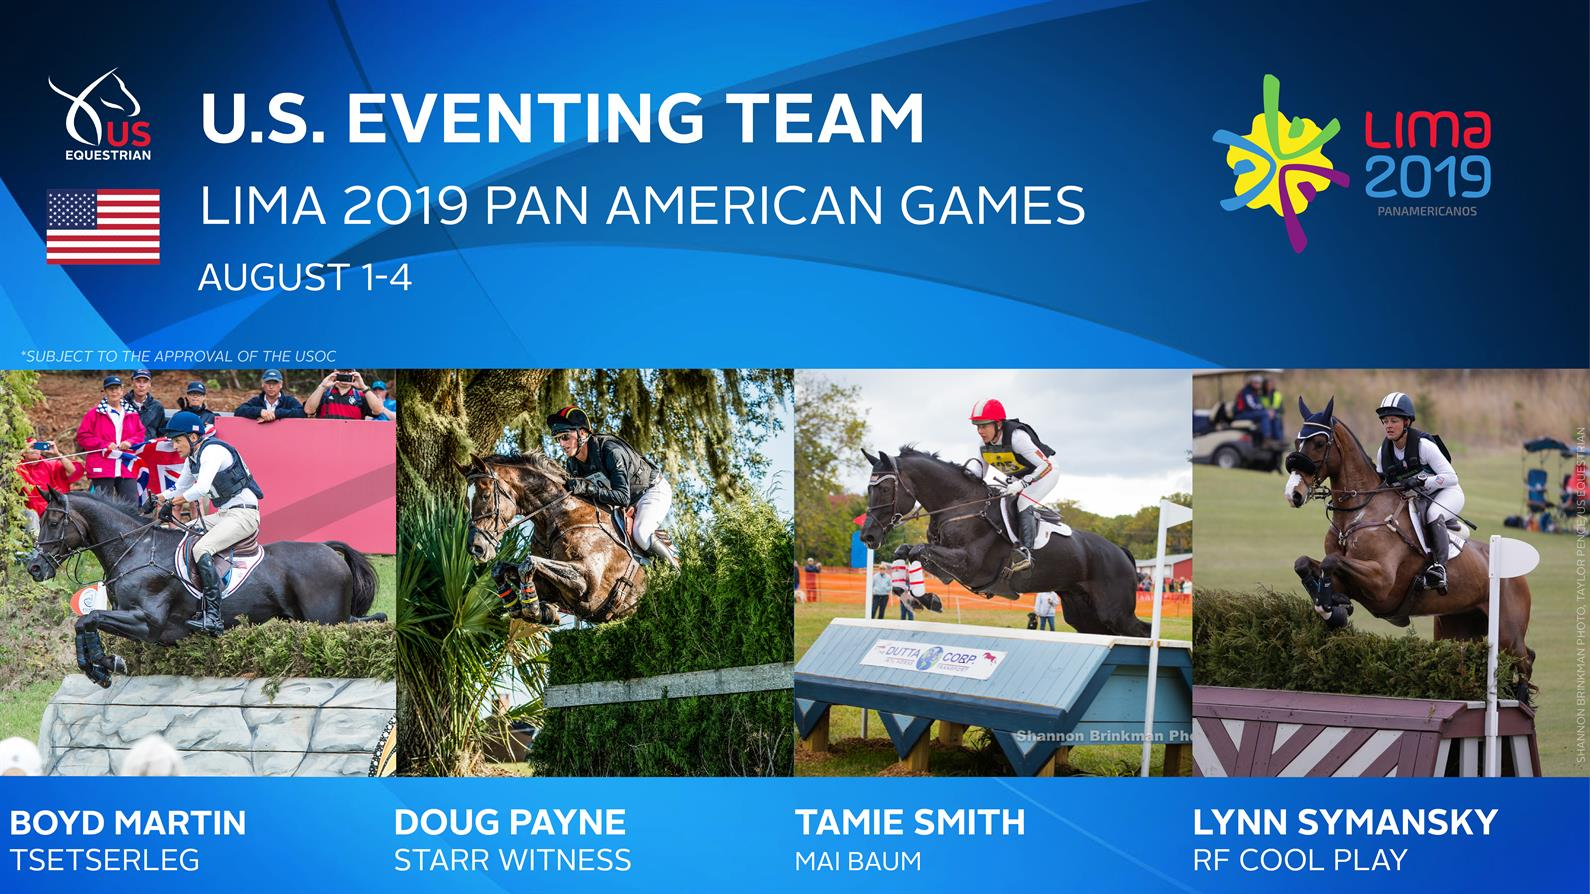 eventingpanamteamupdated_large.jpg